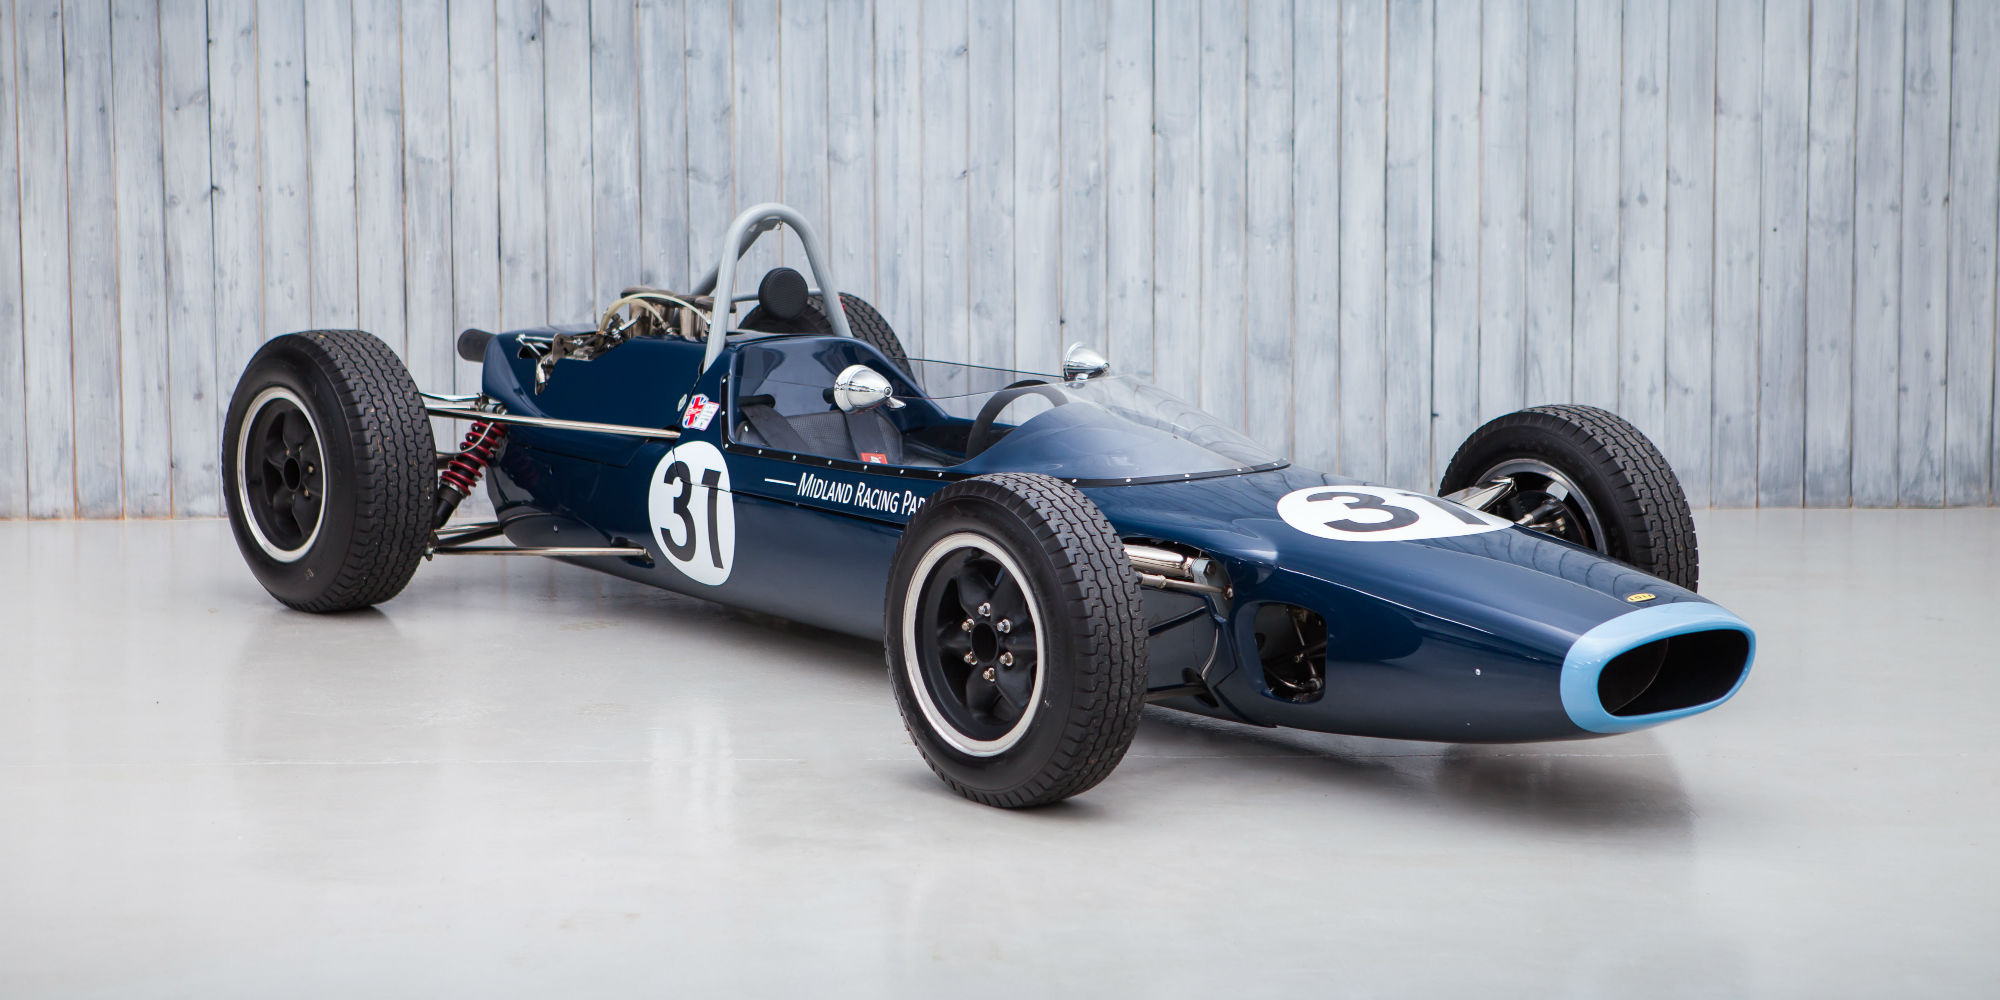 The Ex – Eric Offenstadt 1965 Lola T60 Formula 2